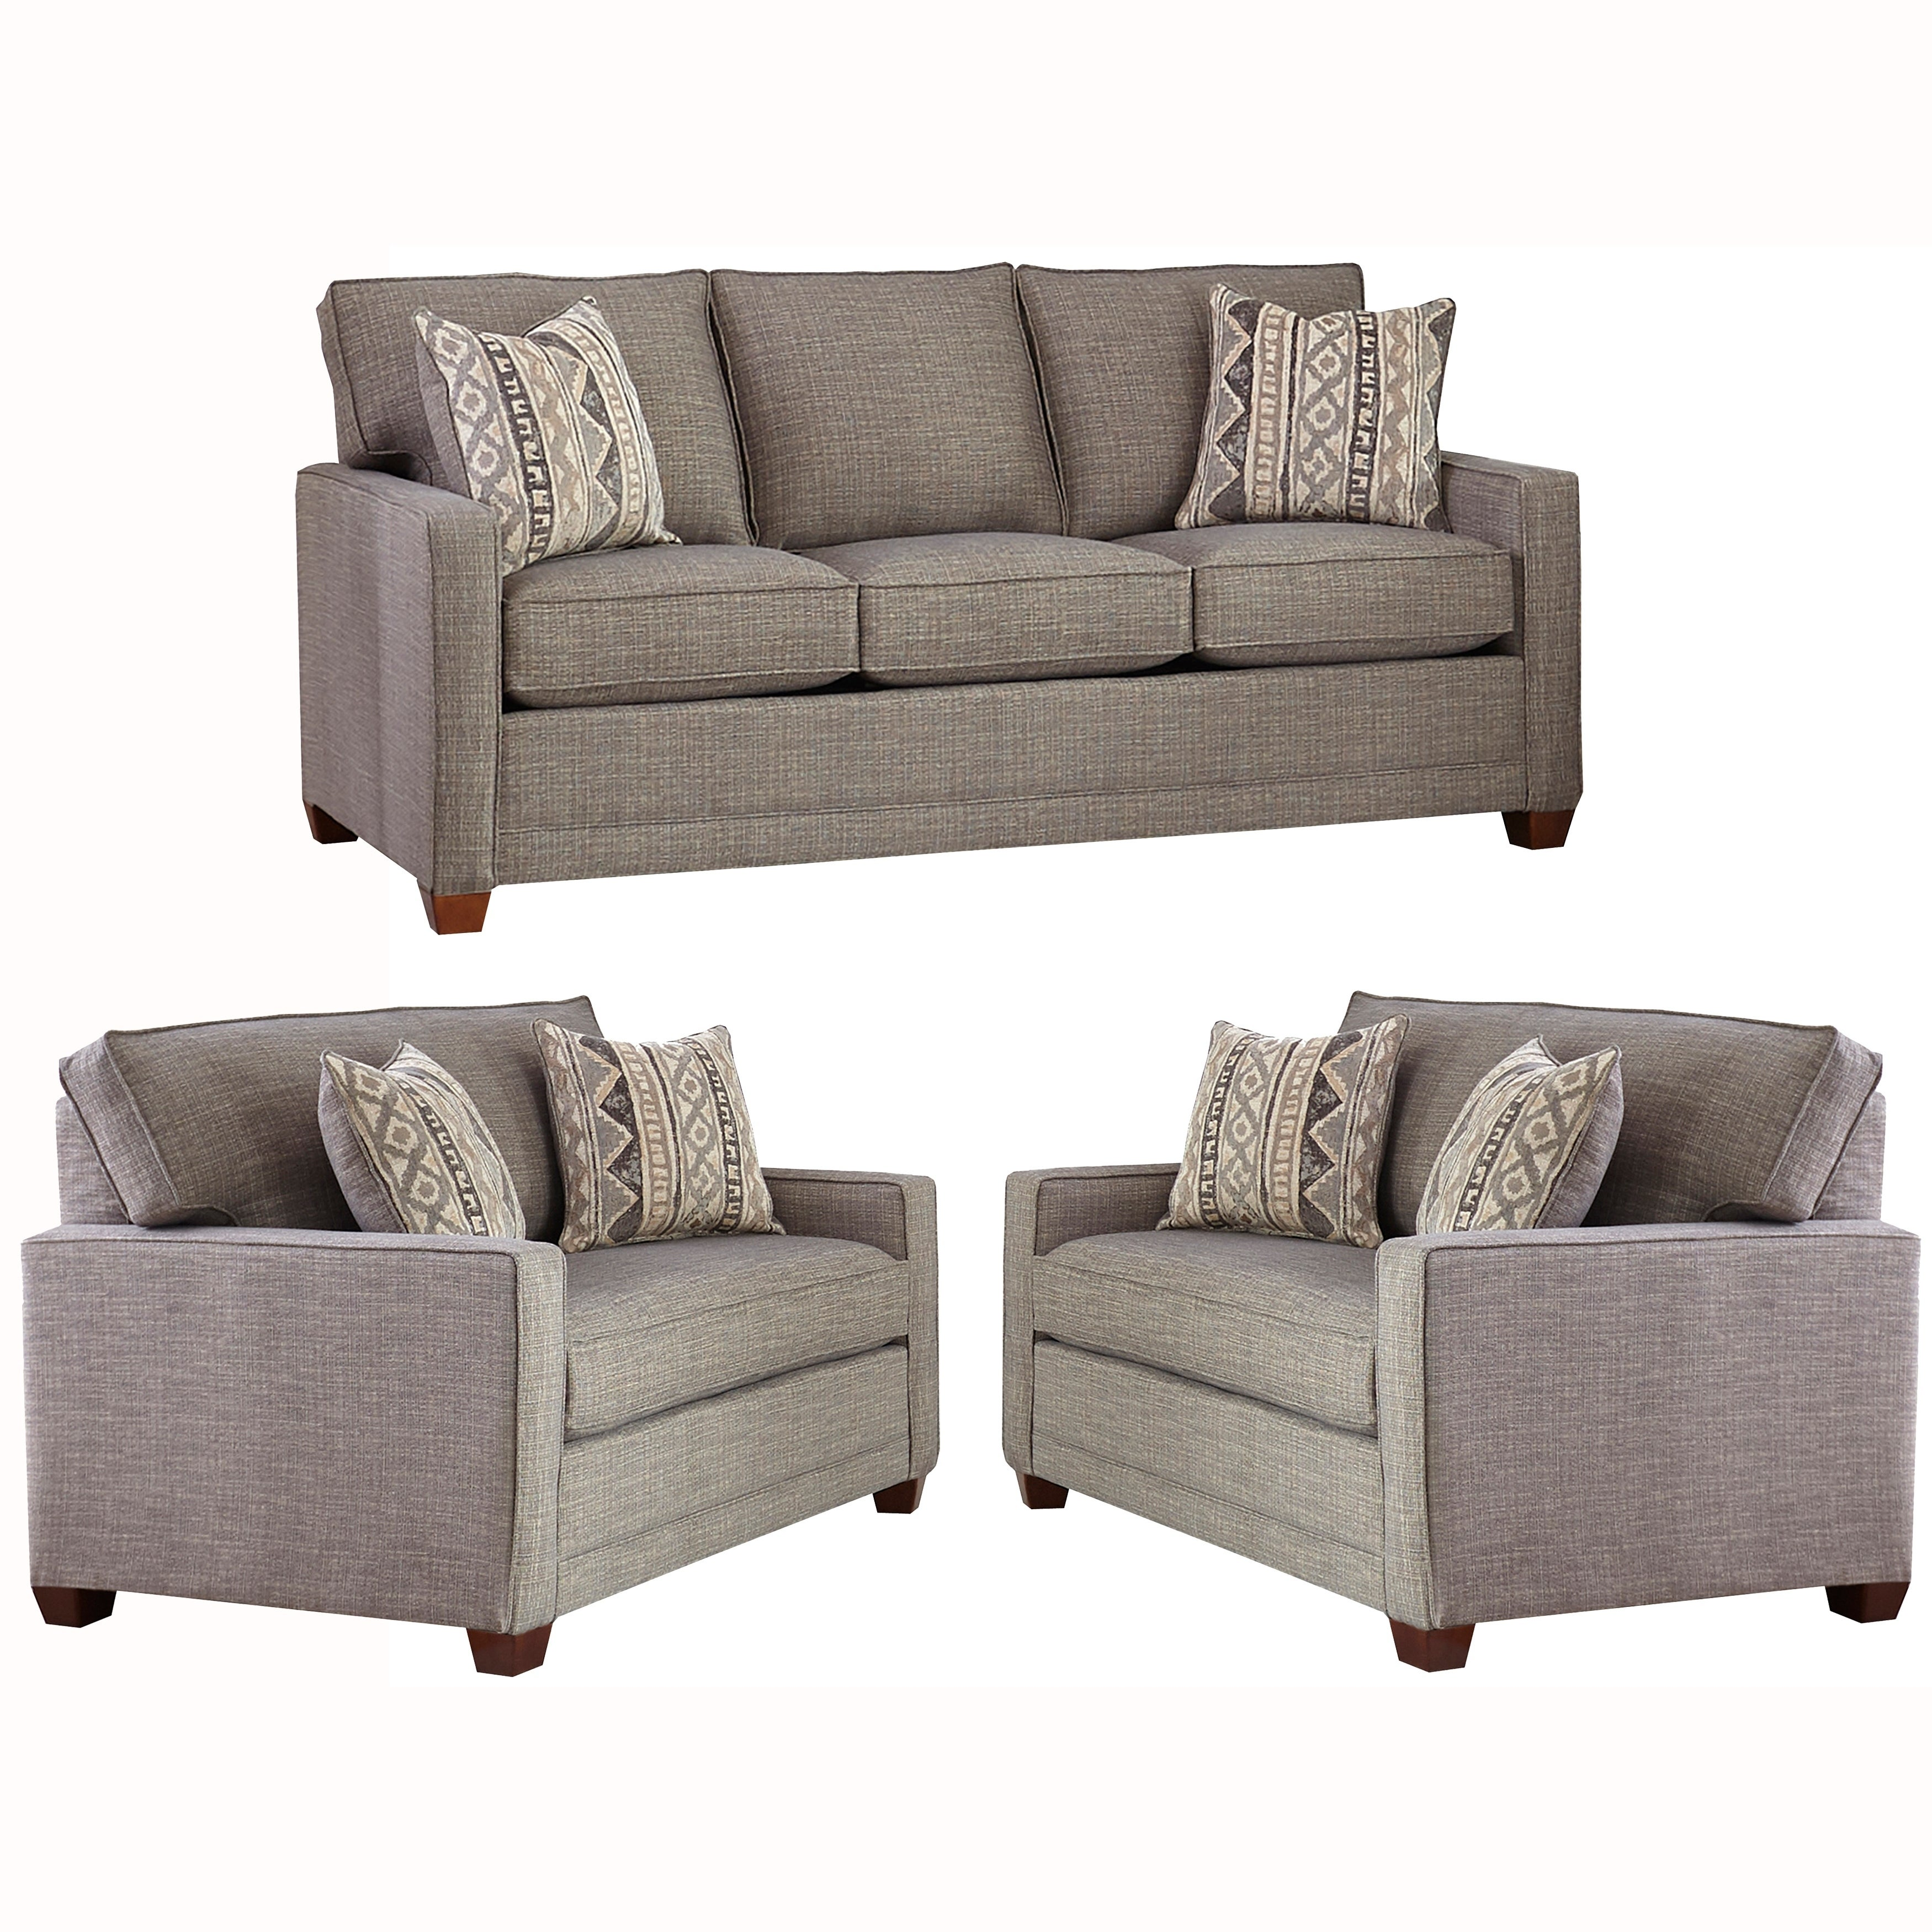 Grey Fabric Sofa Bed And Two Chair